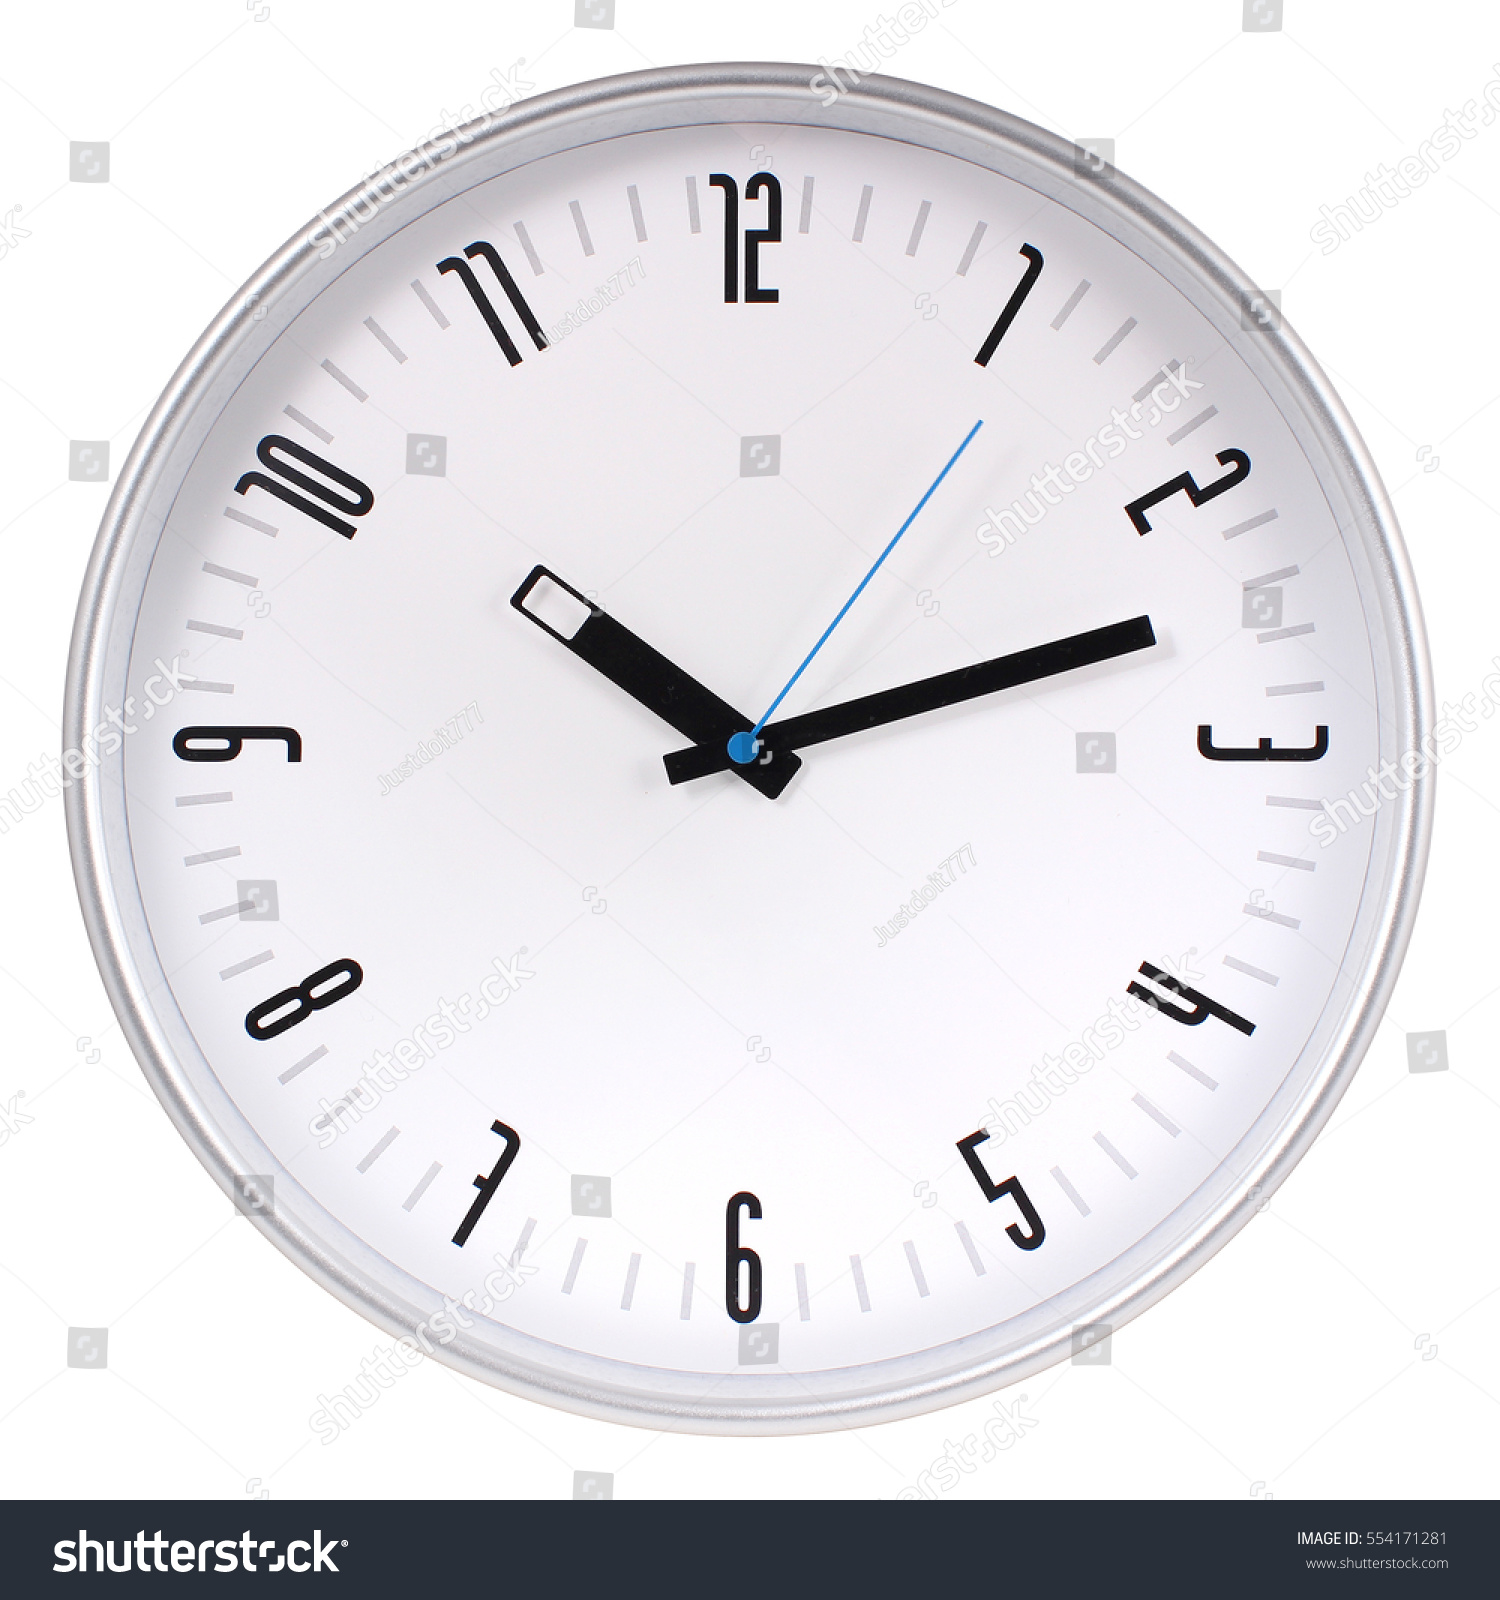 Silver round wall clock stock photo 554171281 shutterstock silver round wall clock biocorpaavc Choice Image